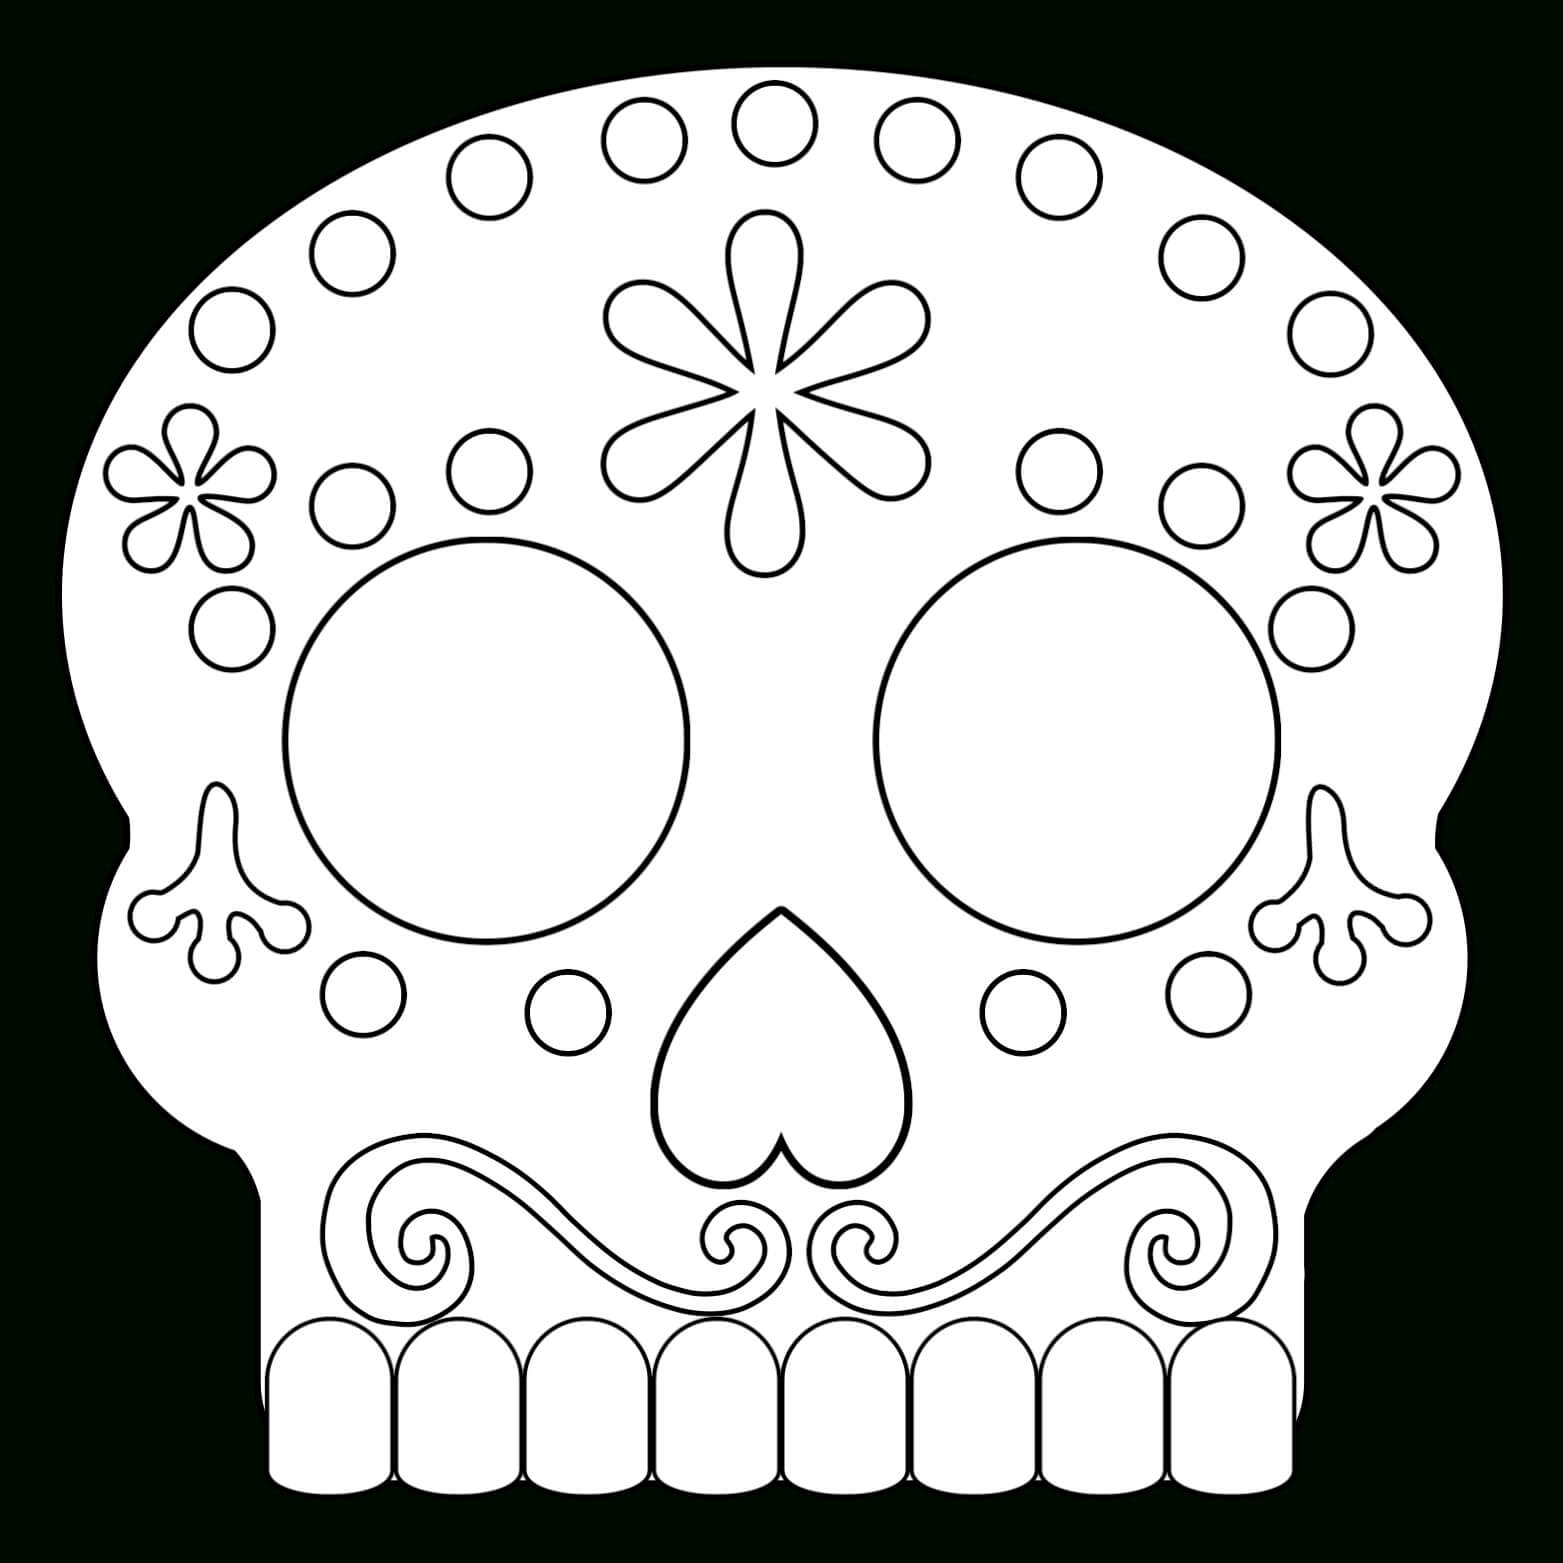 Day Of The Dead Masks Sugar Skulls Free Printable - Paper within Blank Sugar Skull Template